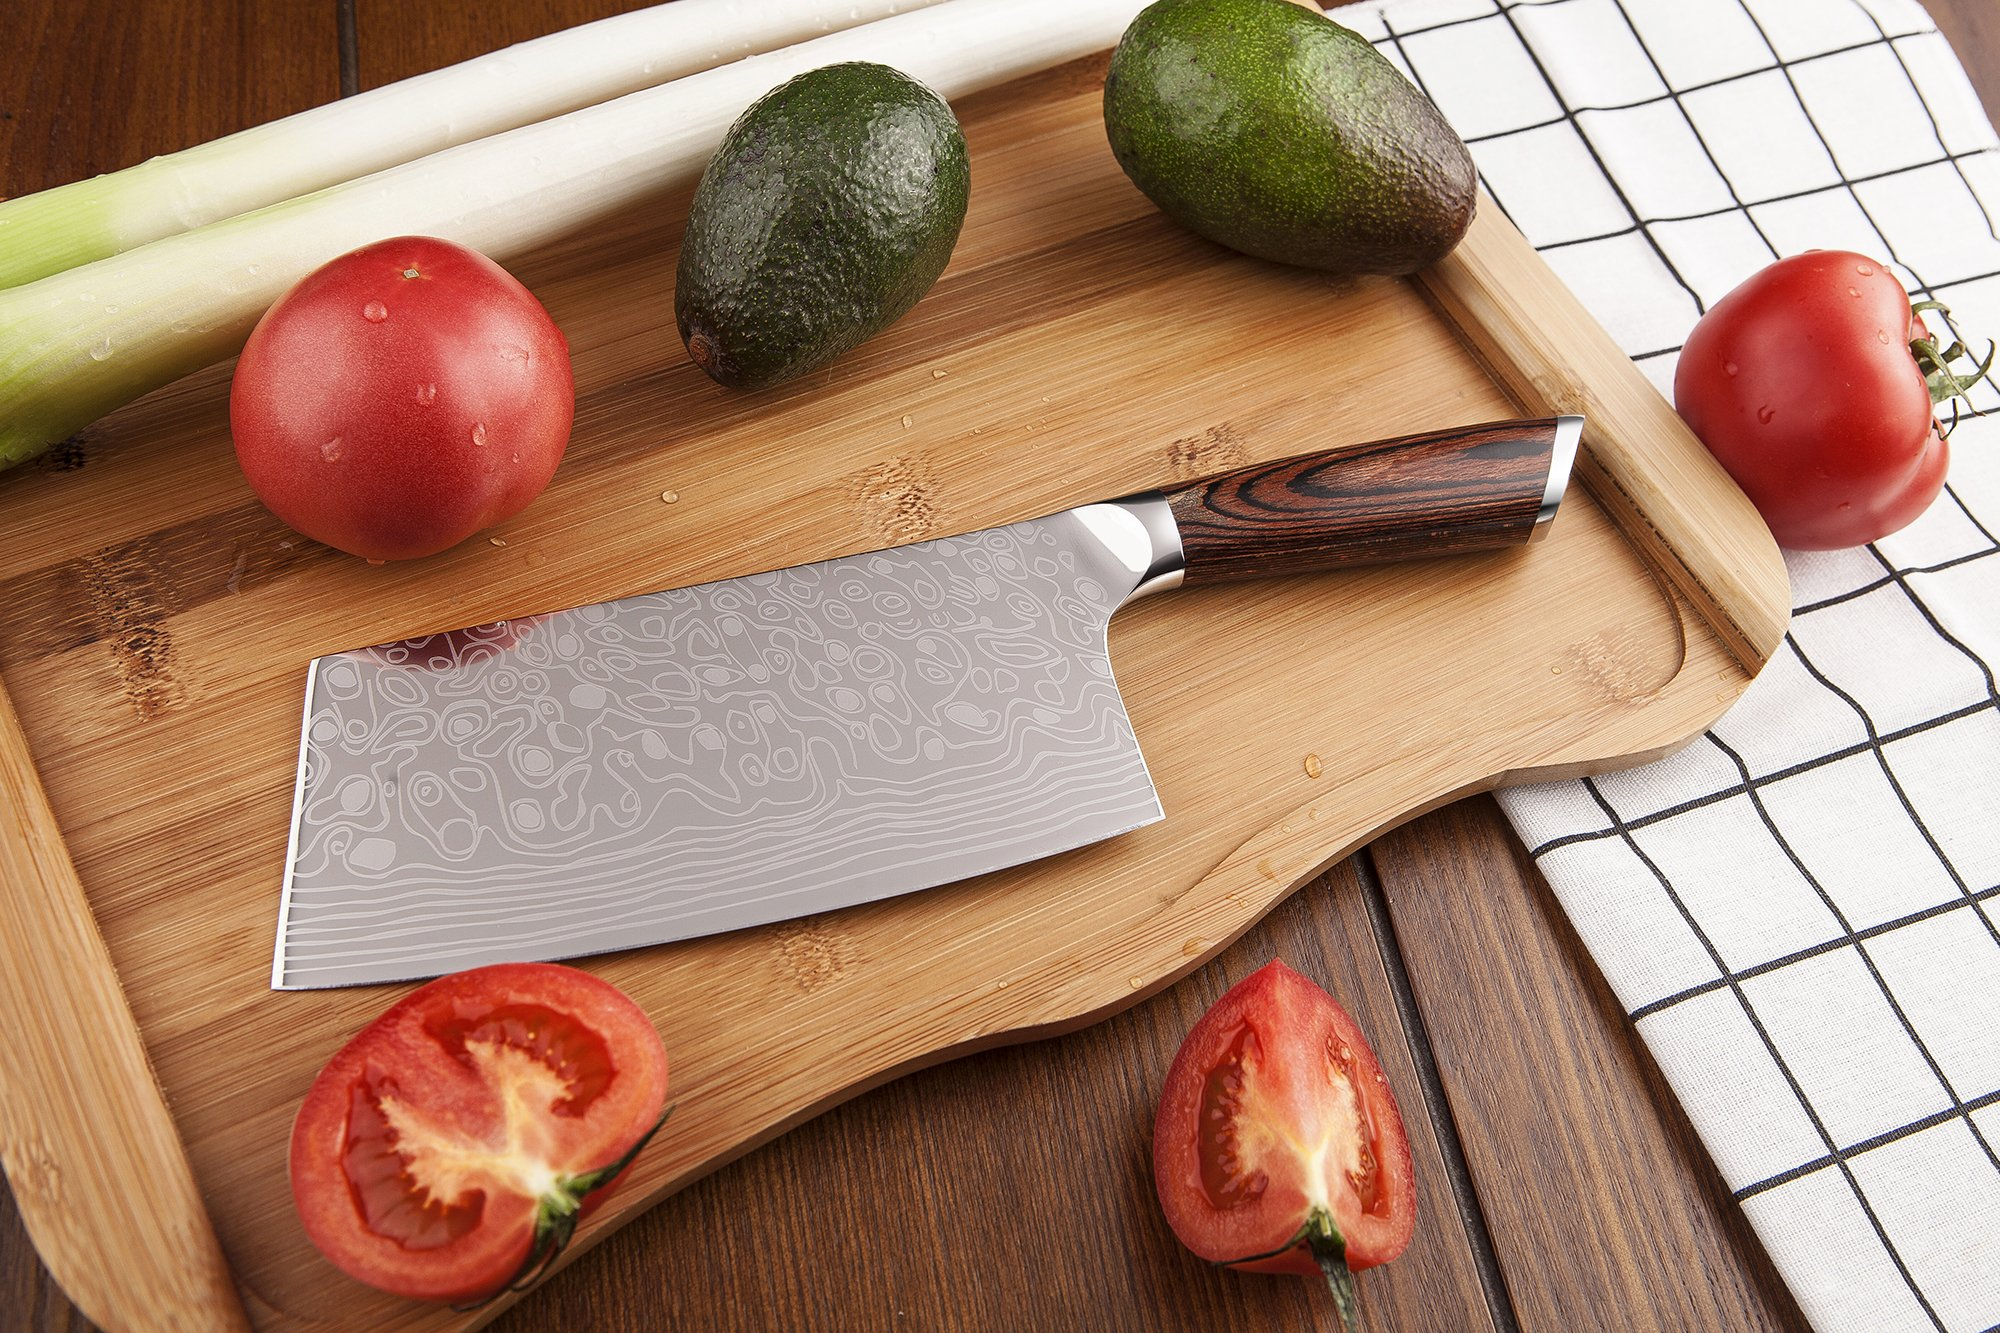 EKUER 7-Inch Chinese Chef's Meat Chopper Cleaver Butcher Vegetable Knife for Home Kitchen or Restaurant,German High Carbon Stainless Steel by EKUER (Image #4)